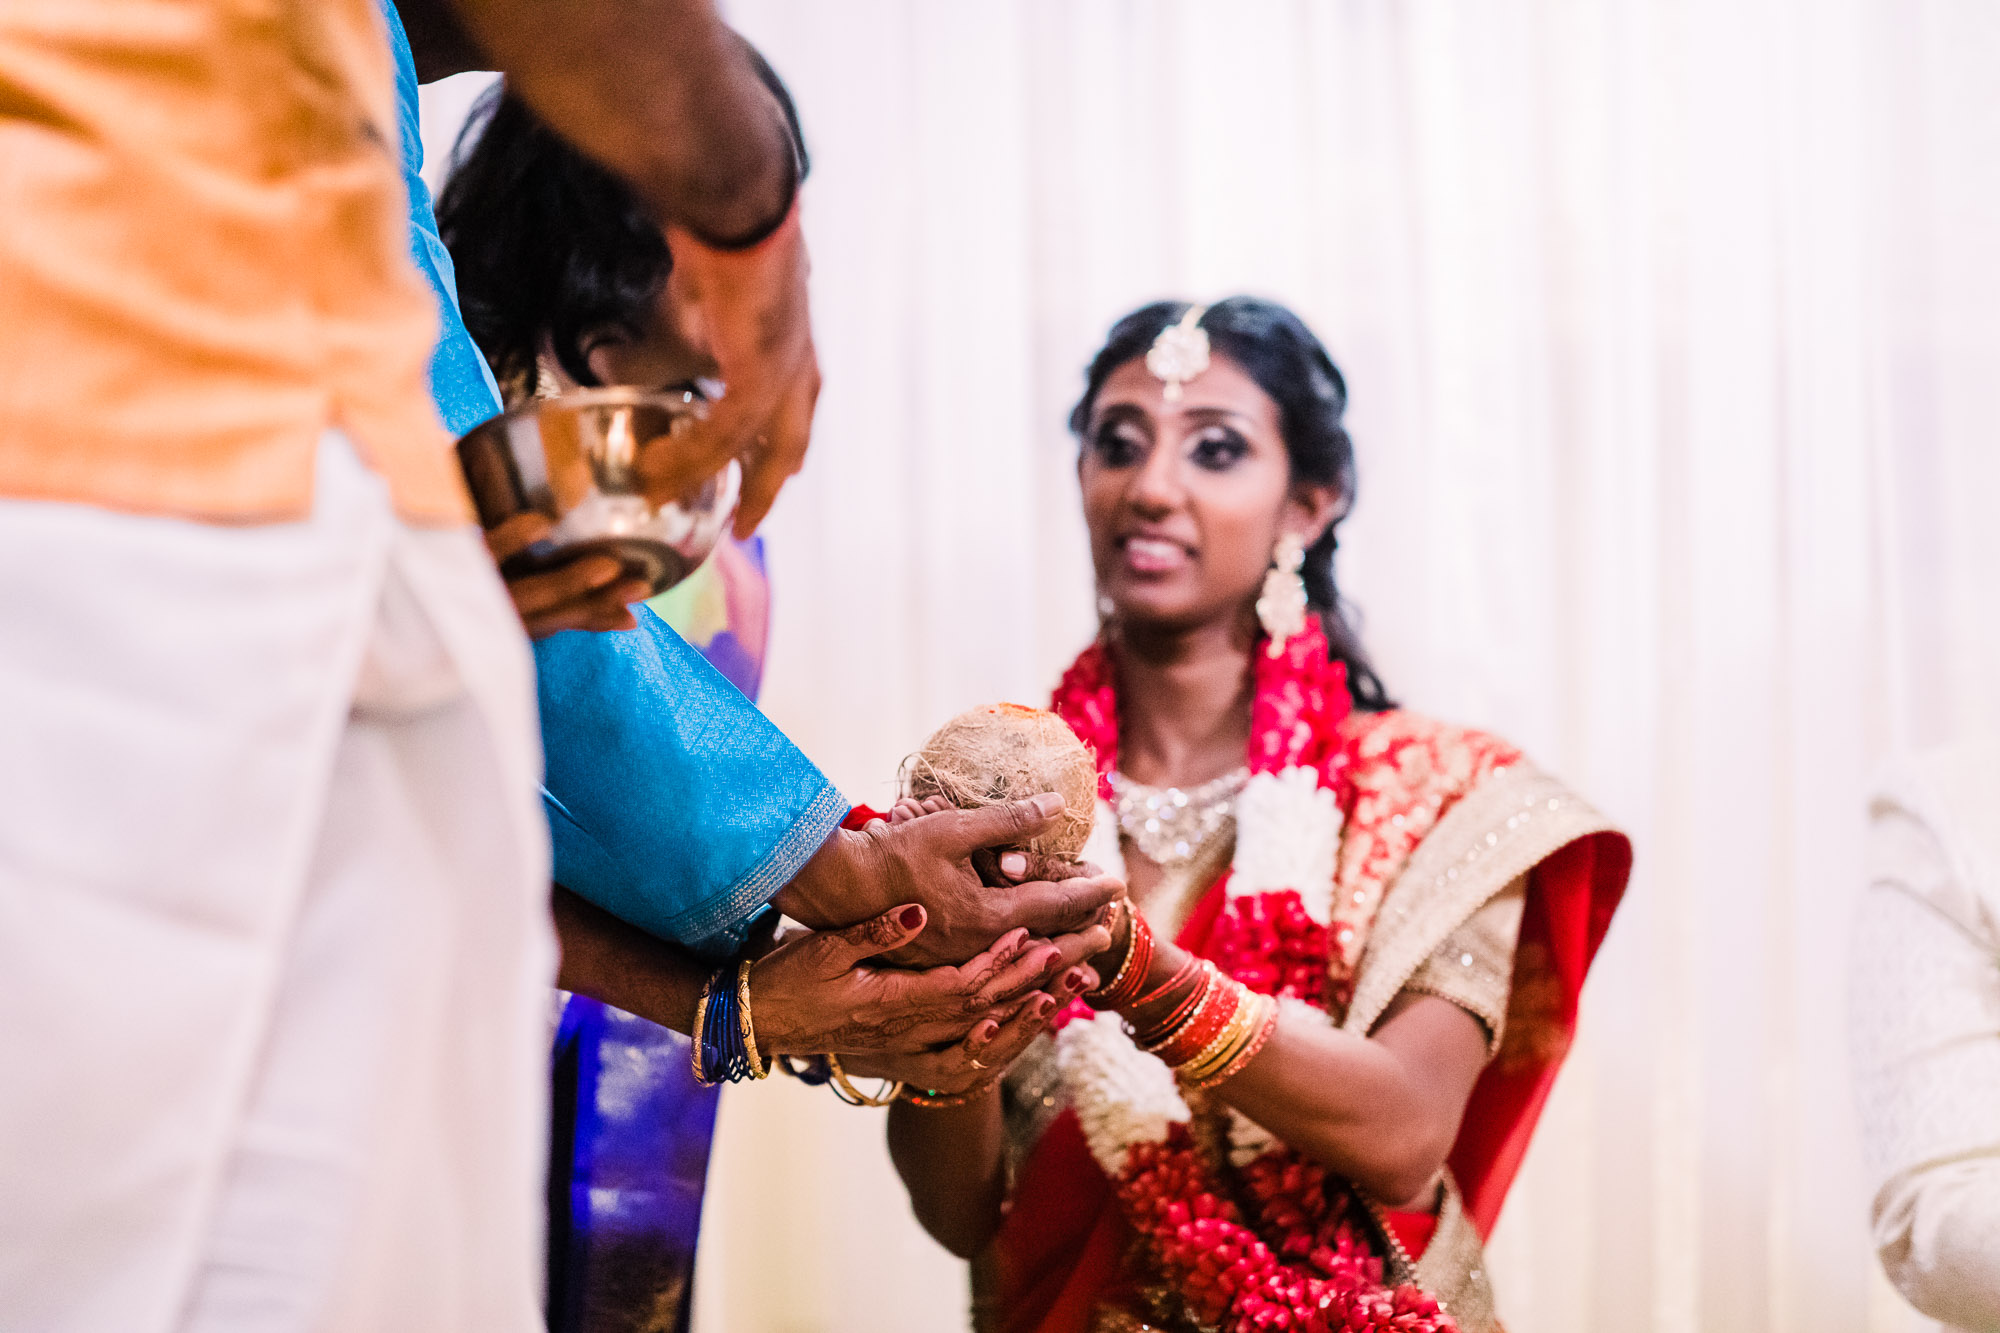 Scranton_Radisson_Hindu_Wedding-6546.jpg